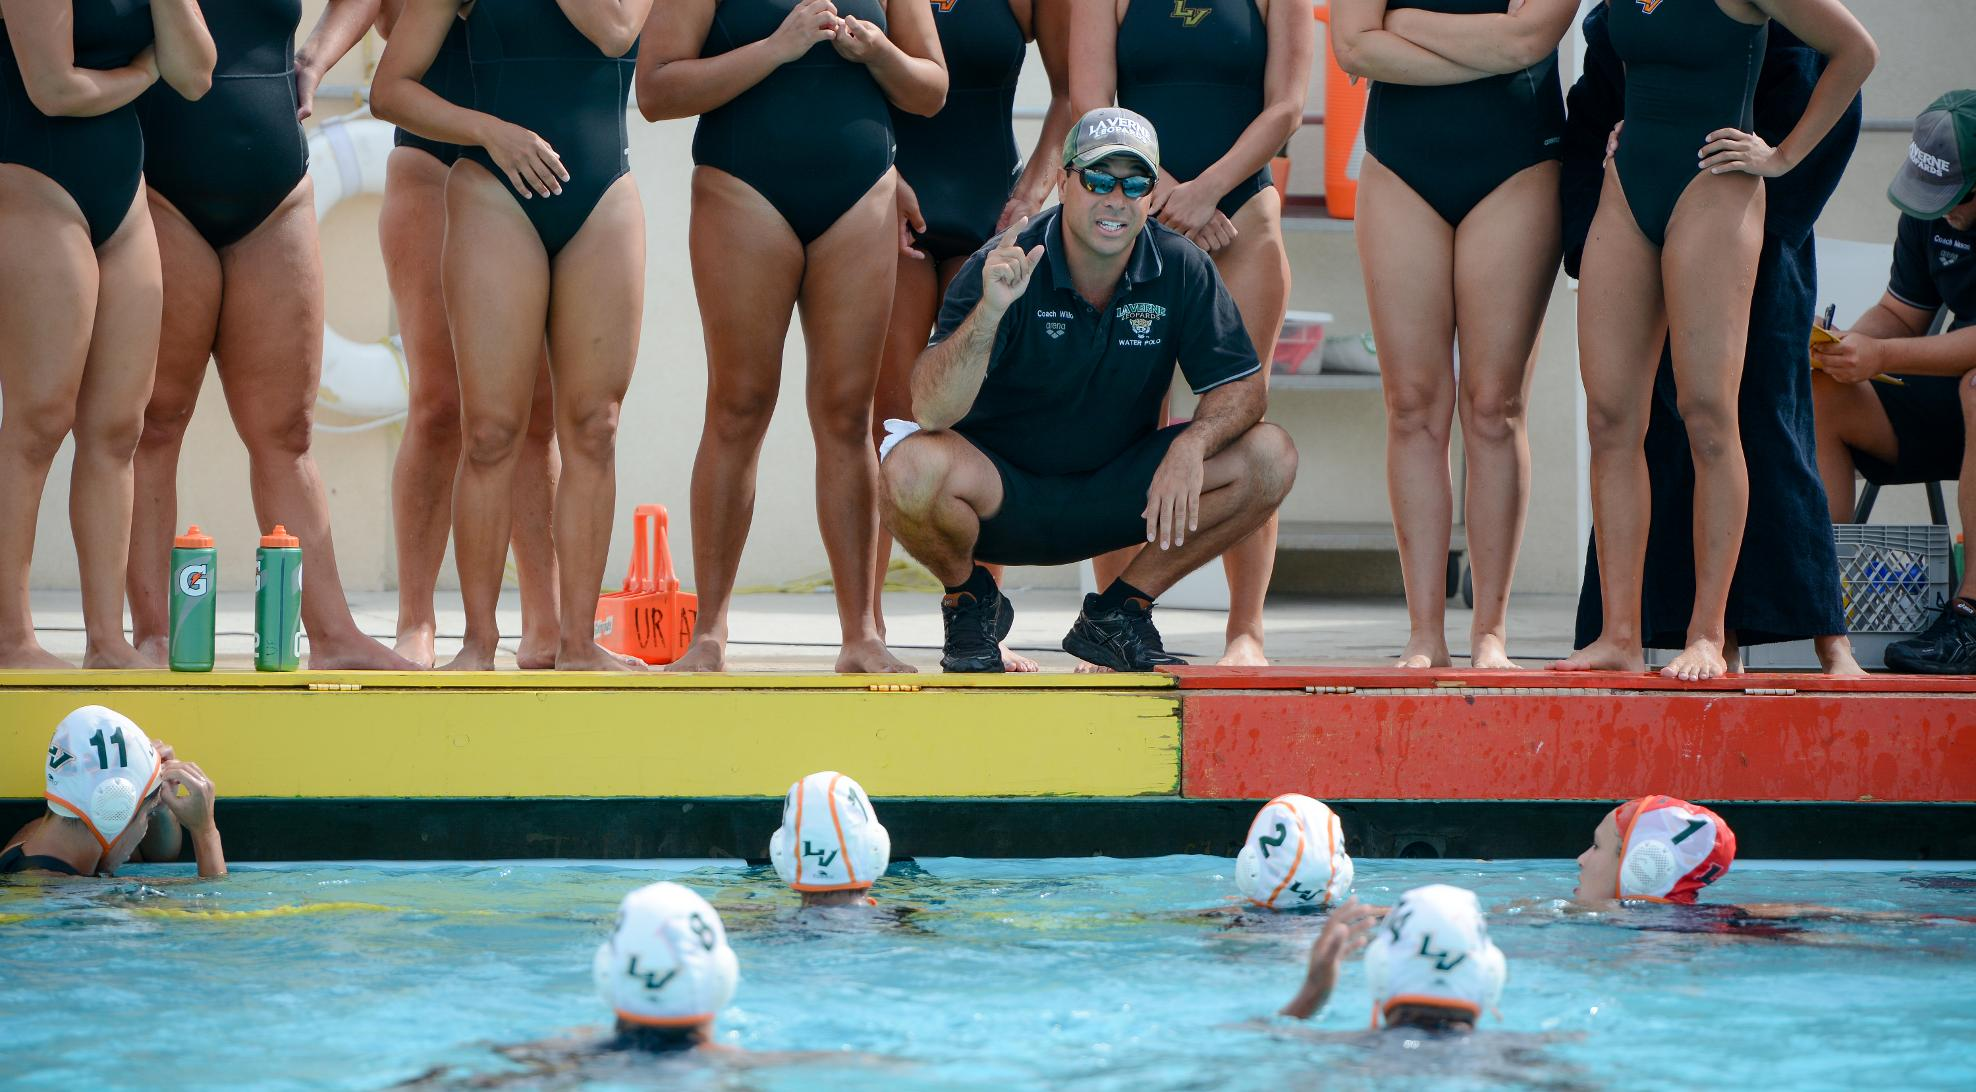 William Rodriguez steps down as water polo coach